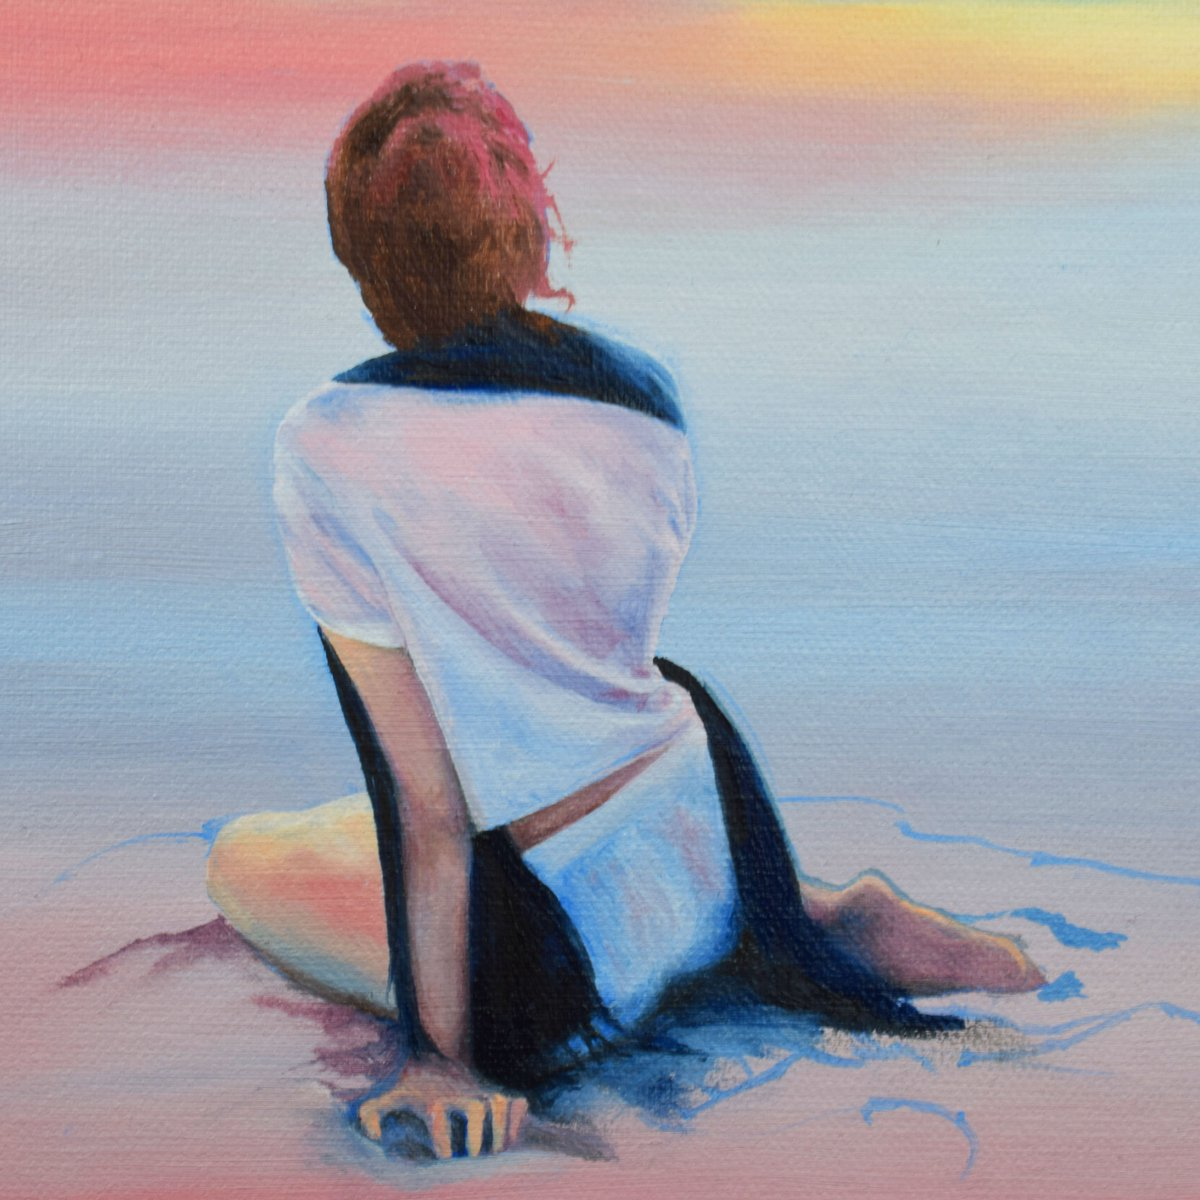 #HappyFriday everyone Back in the #Studio today working on my latest #oilpainting Keep sharing the love and have a wonderful day my friends  #beach #figure #FridayFeeling #Inspire #artoftheweek #WIP #creativeenergy  #artistsontwitter #painter #art<br>http://pic.twitter.com/6ANq5QksHG